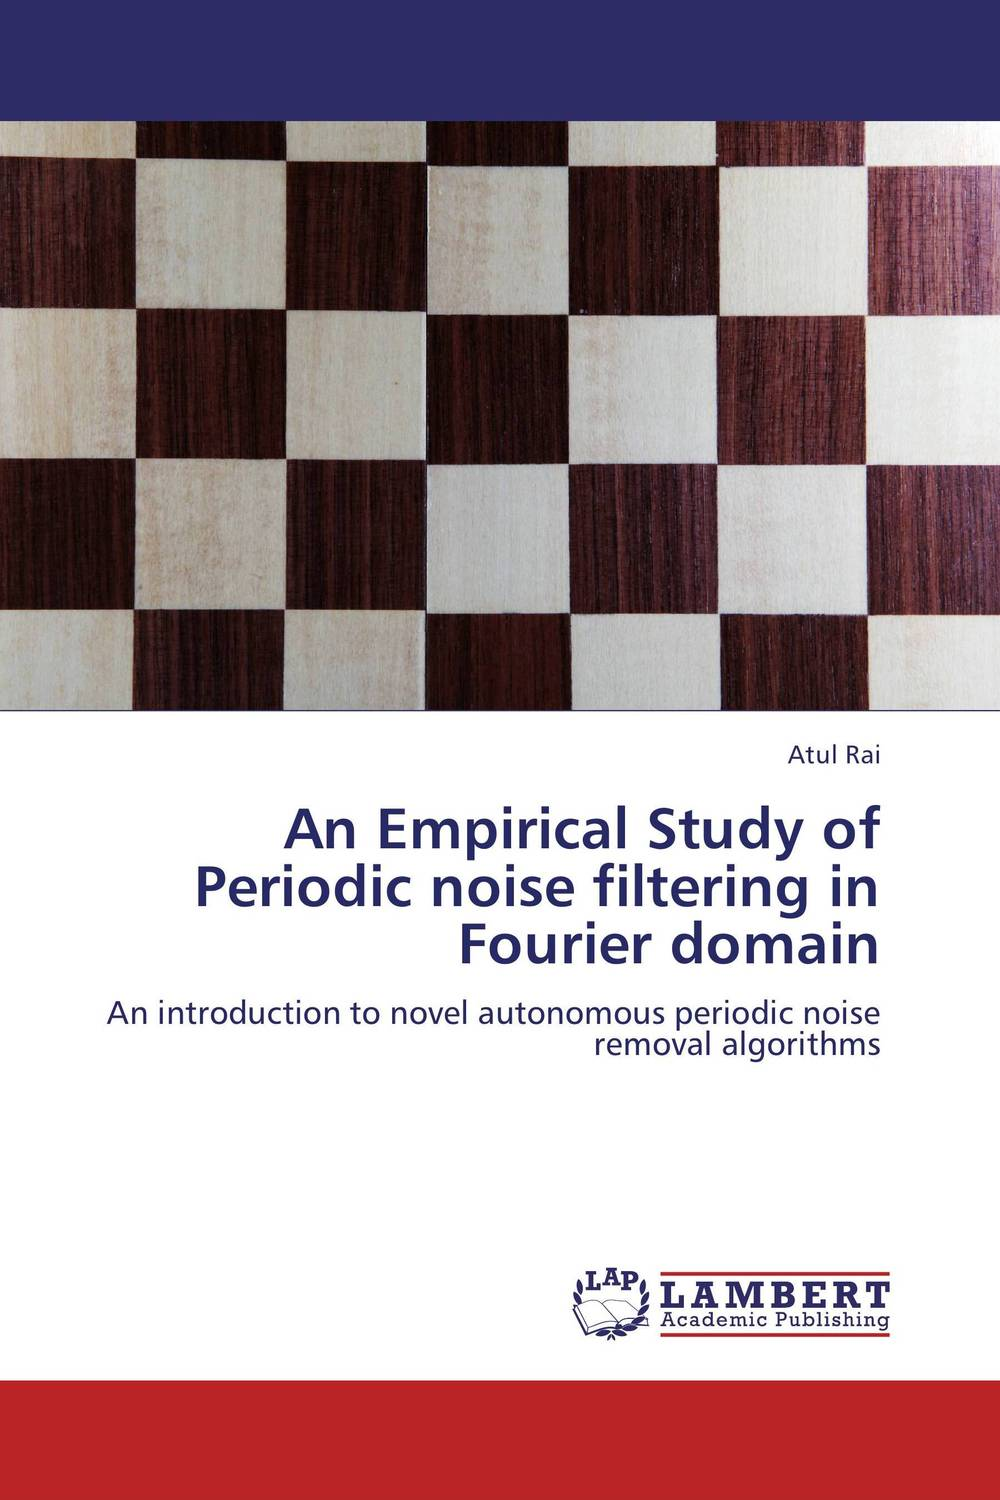 An Empirical Study of Periodic noise filtering in Fourier domain arcade ndoricimpa inflation output growth and their uncertainties in south africa empirical evidence from an asymmetric multivariate garch m model